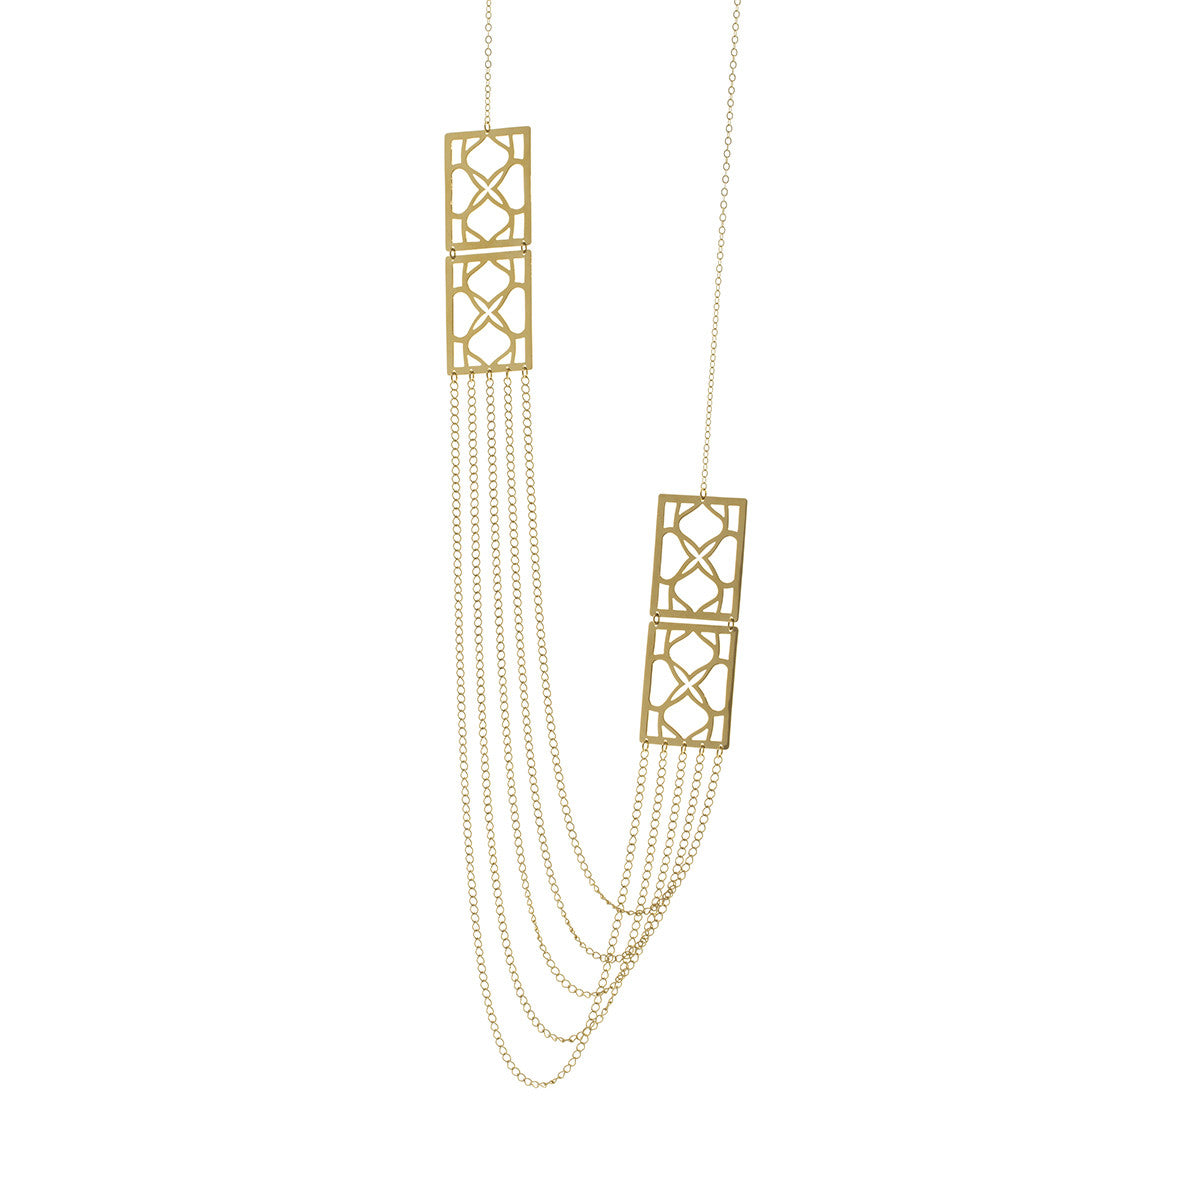 Signature Gold rectangle Long Chain Necklace - MCK Brands